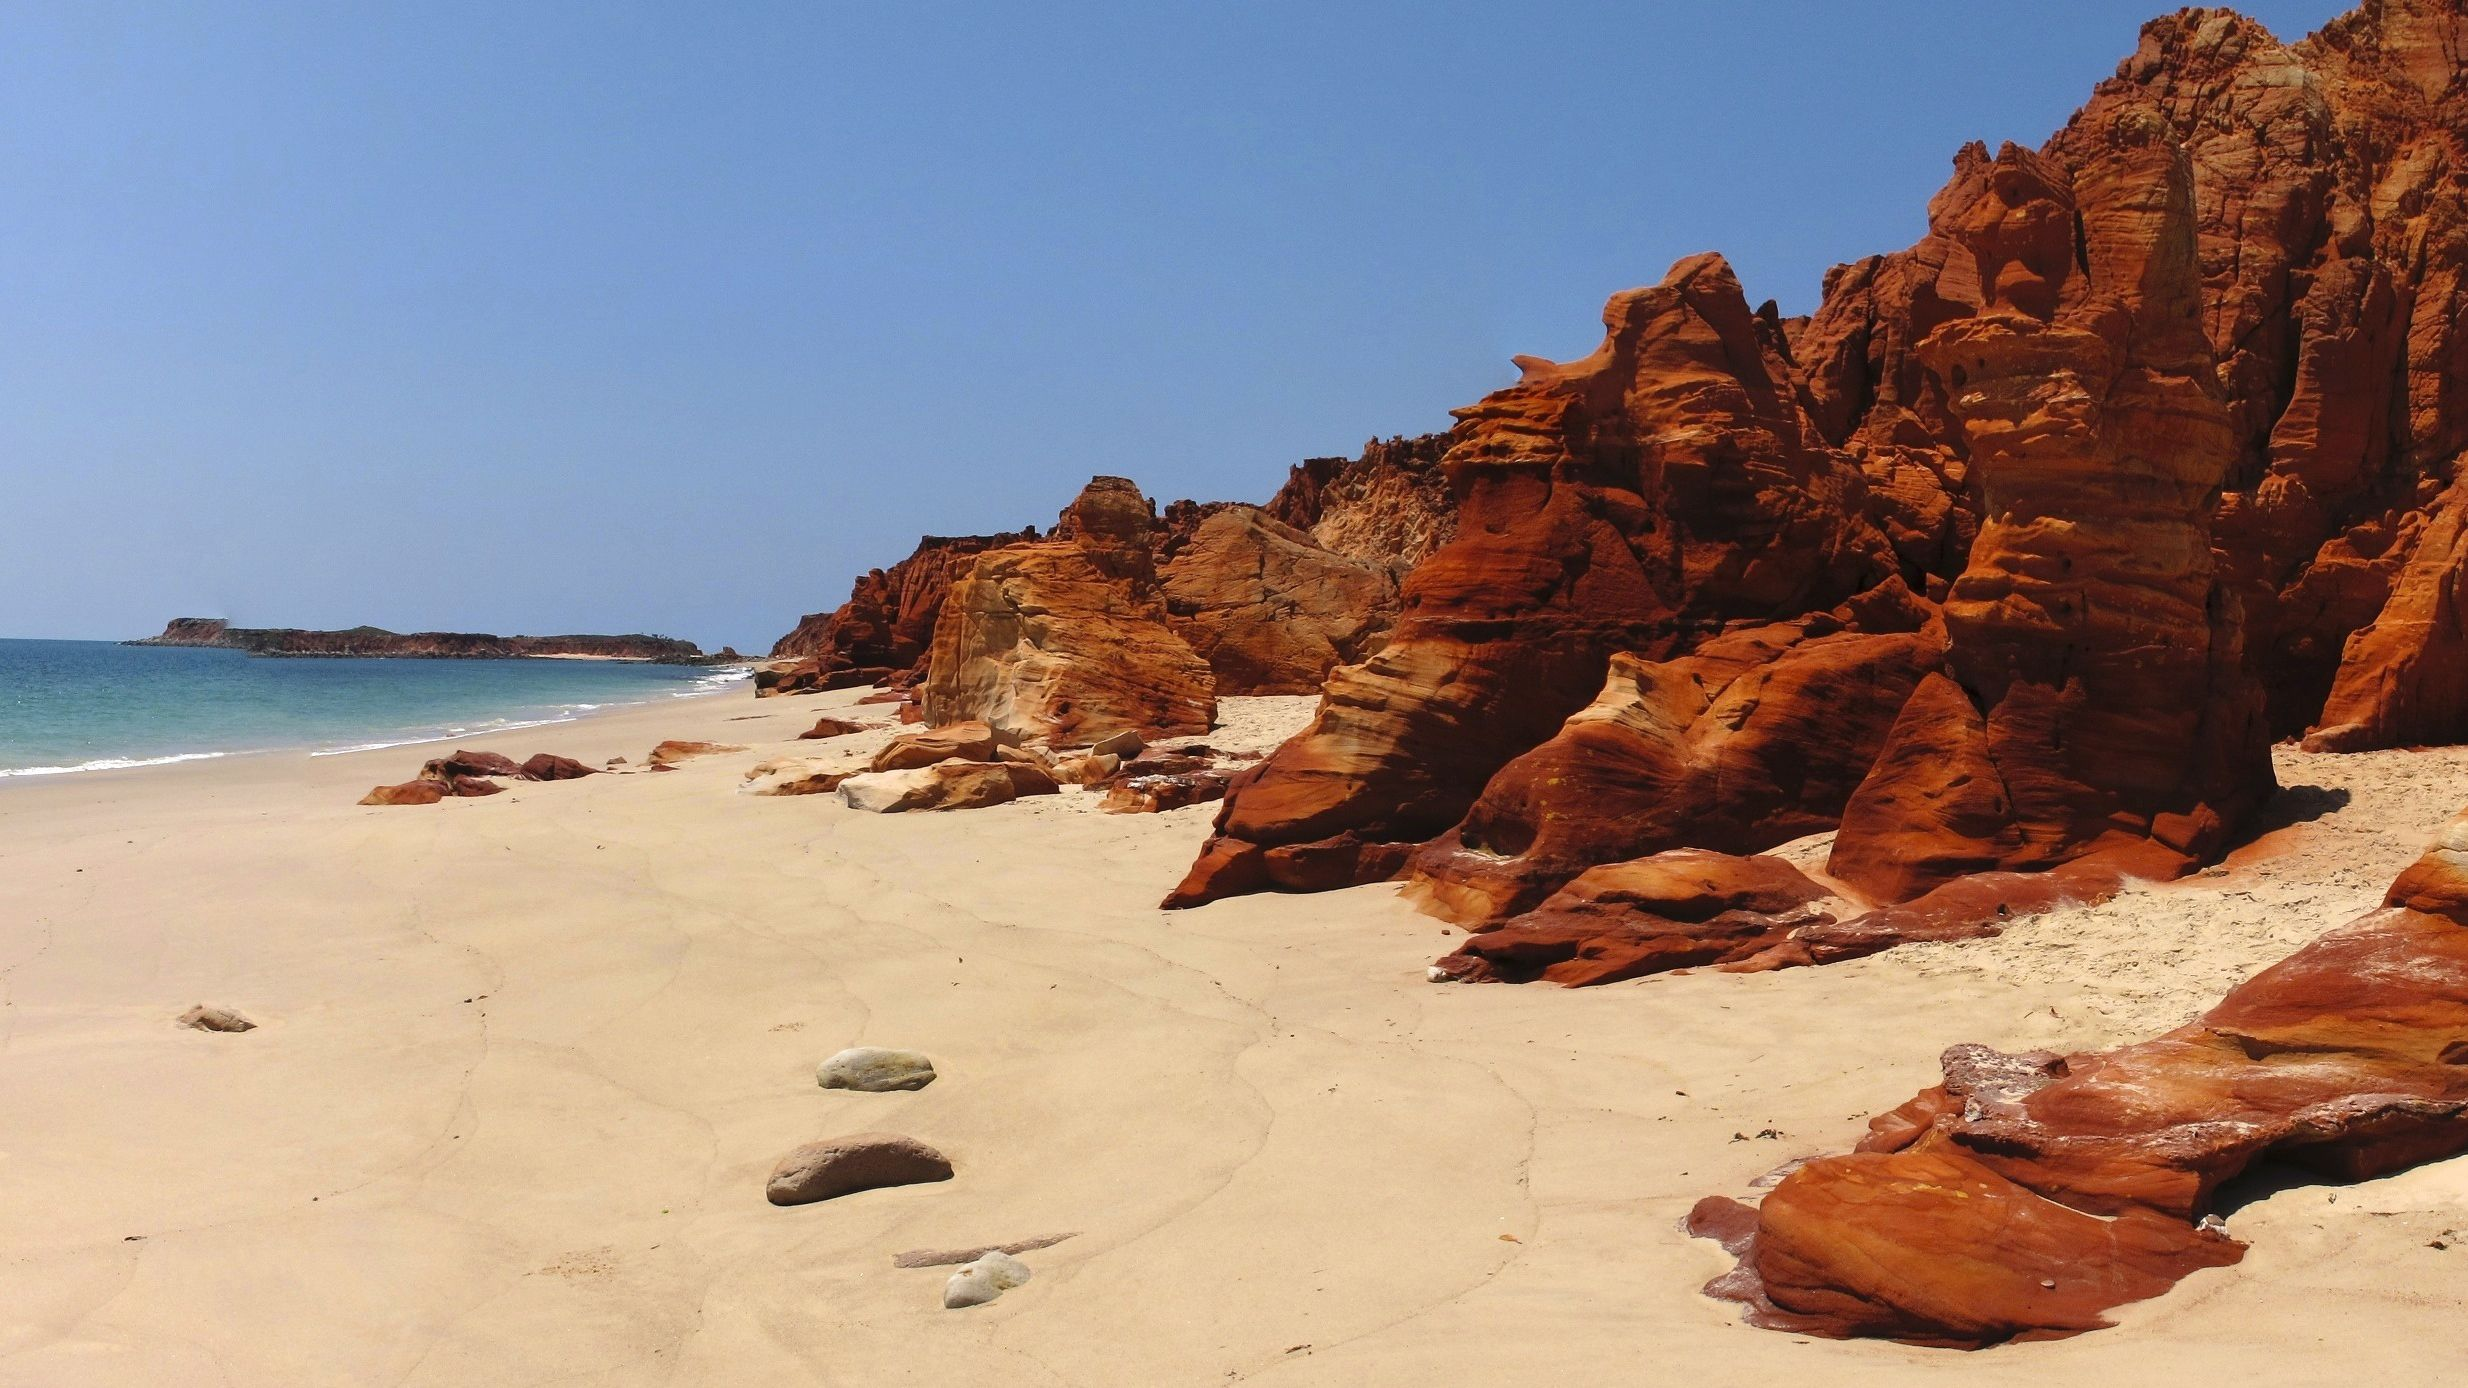 Cape Leveque 4x4 Full-Day Tour from Broome